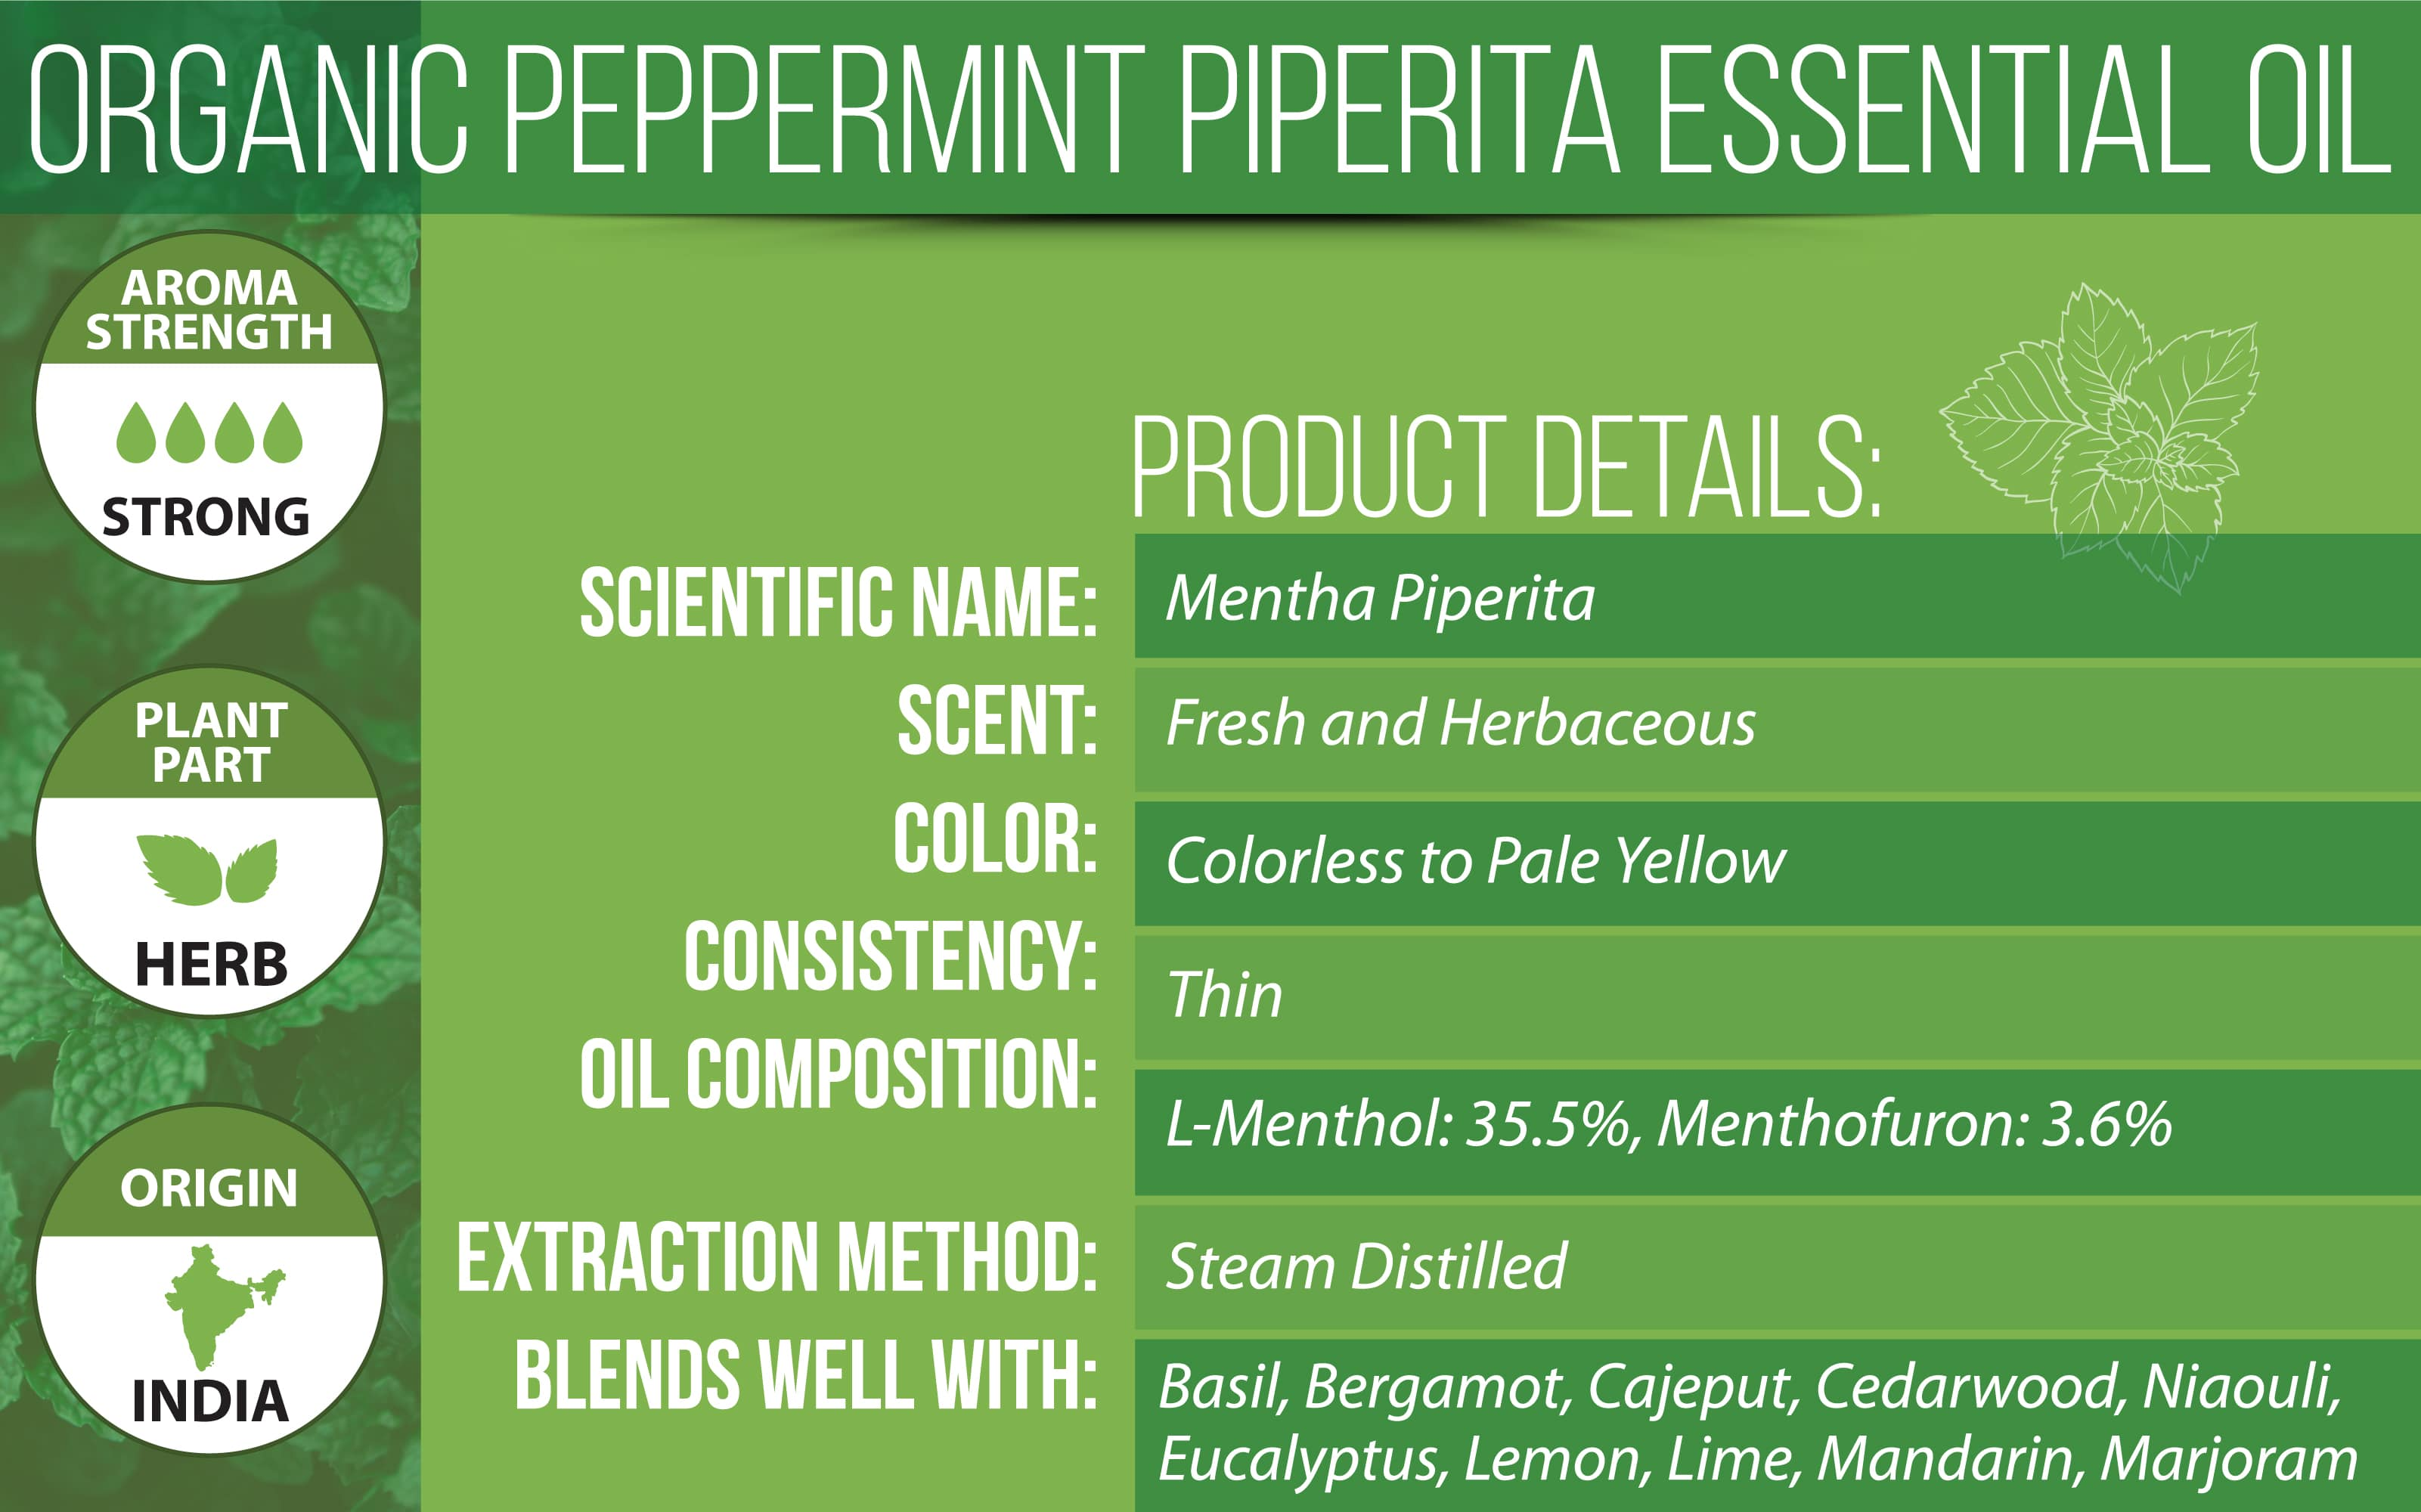 Organic Peppermint Essential Oil Product Details